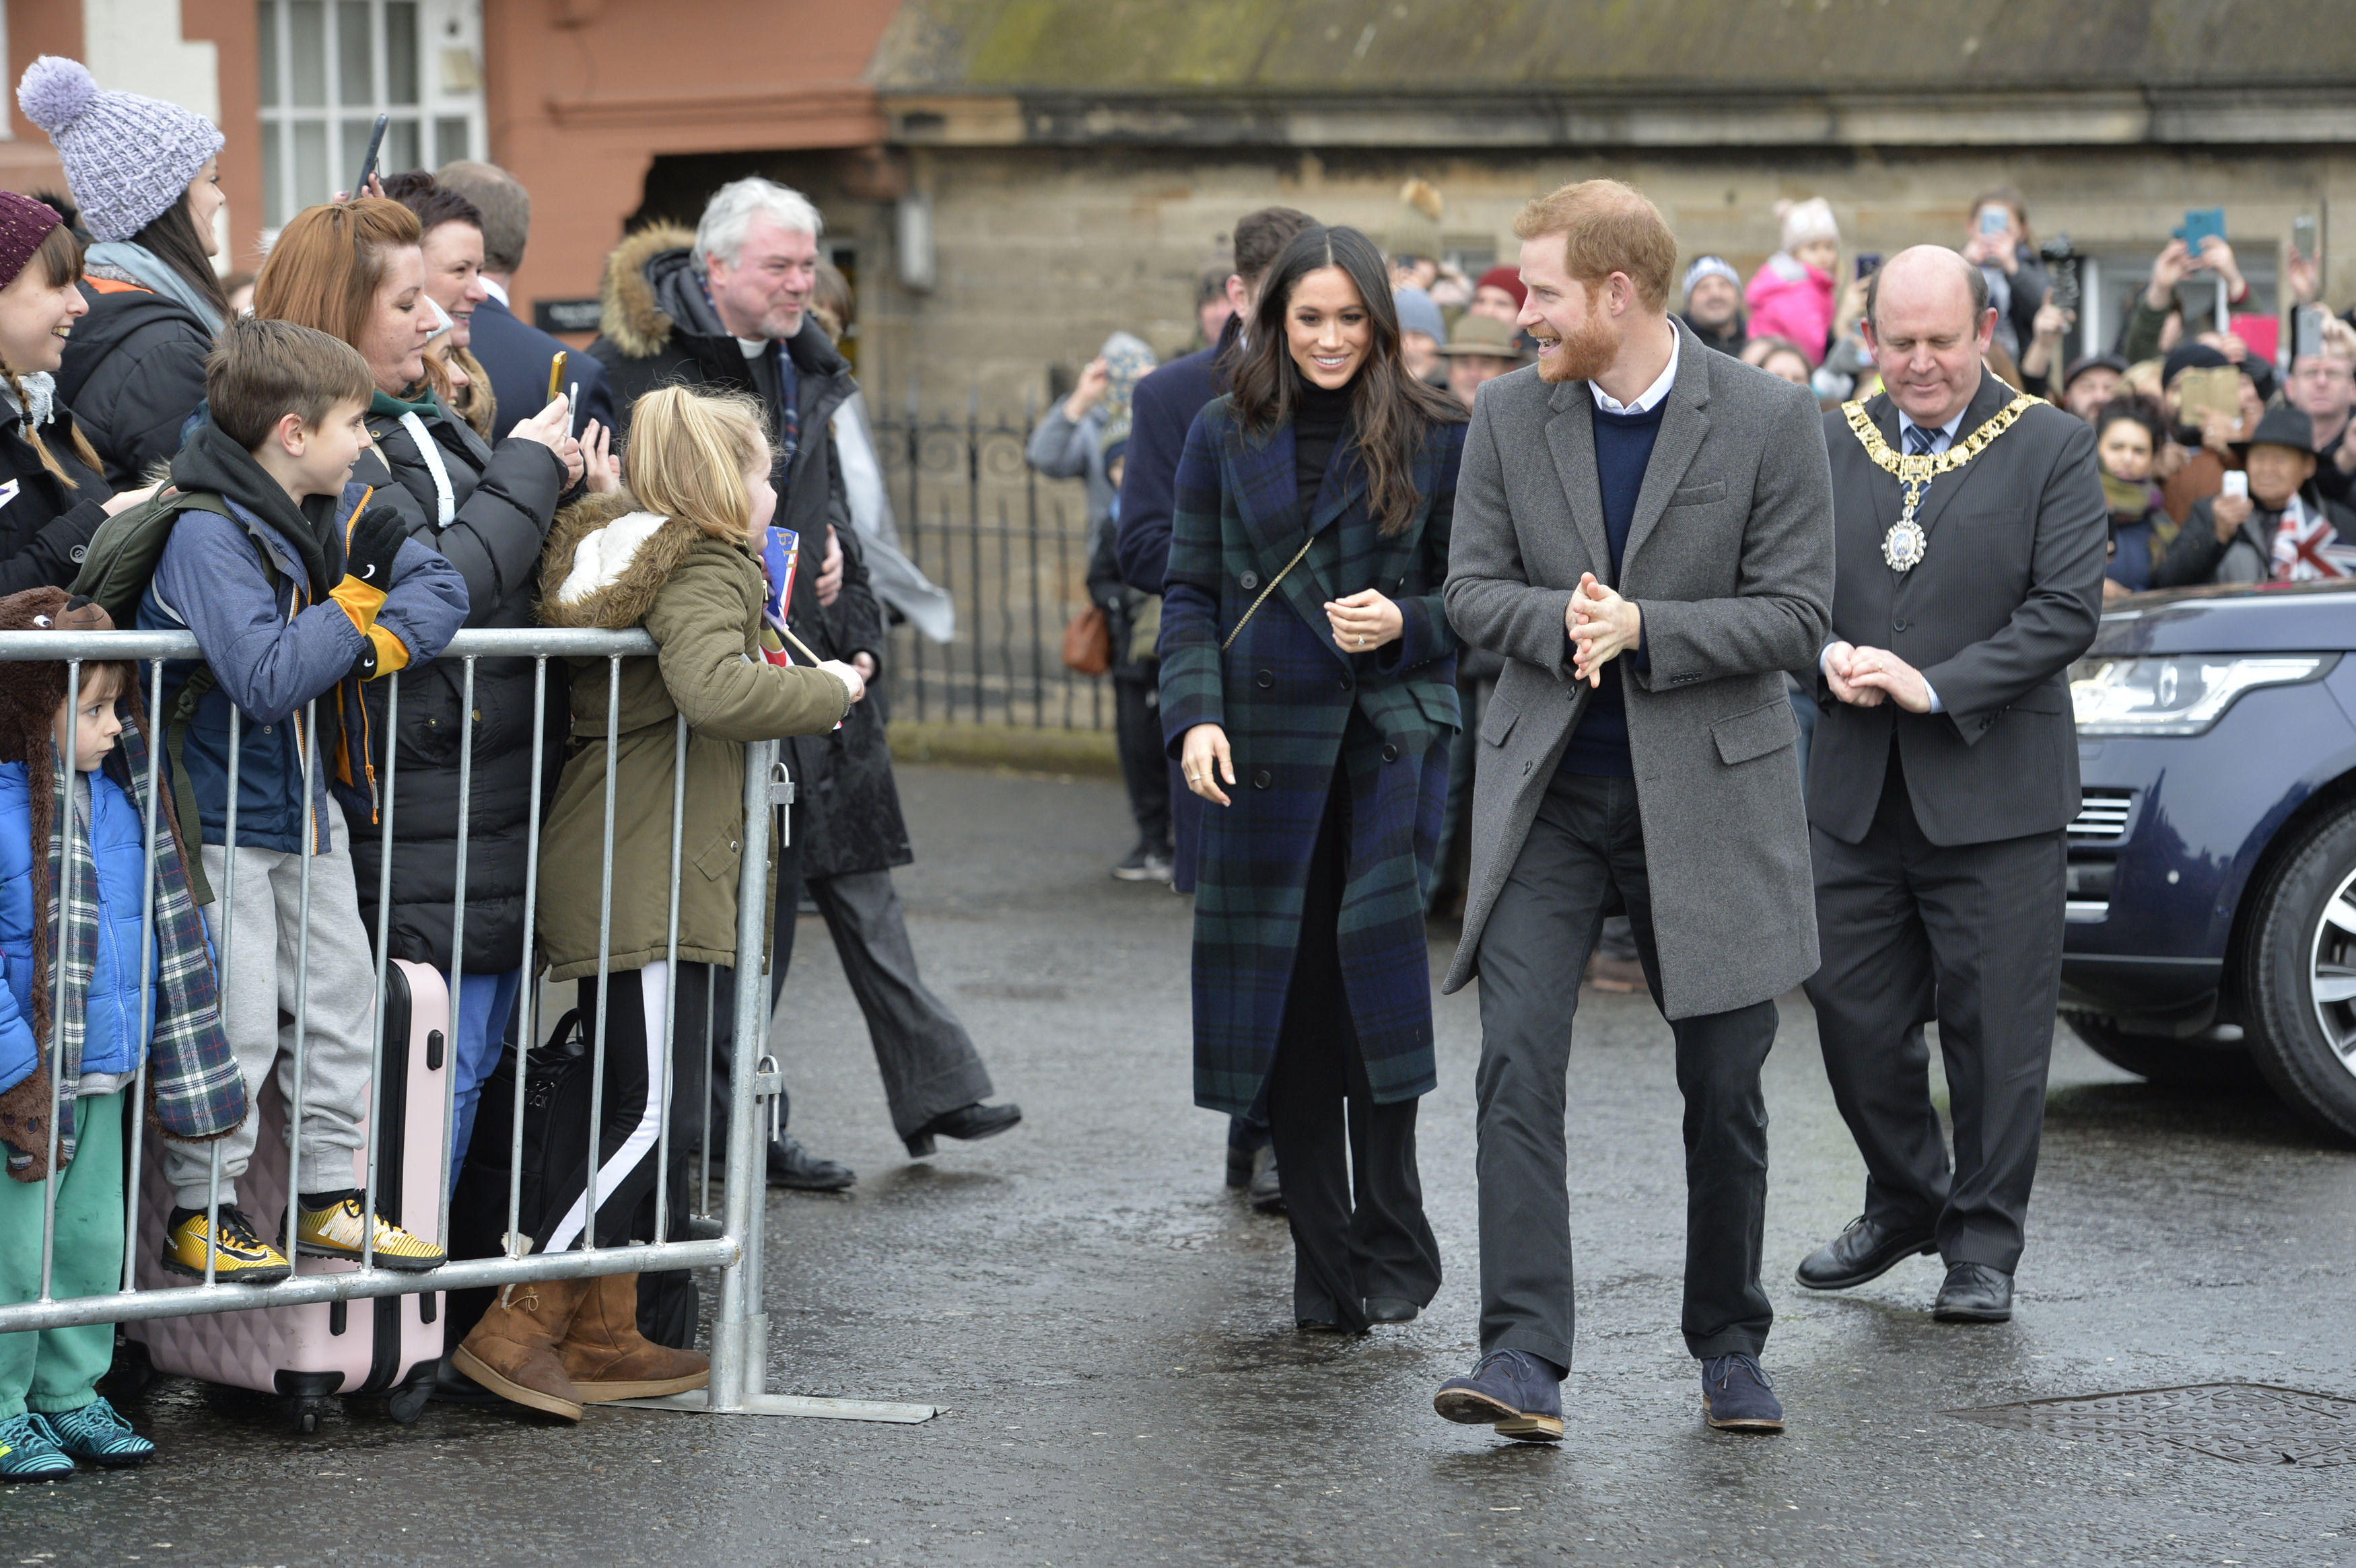 The soon-to-be royal couple arriving at Edinburgh Castle (John Linton/PA)